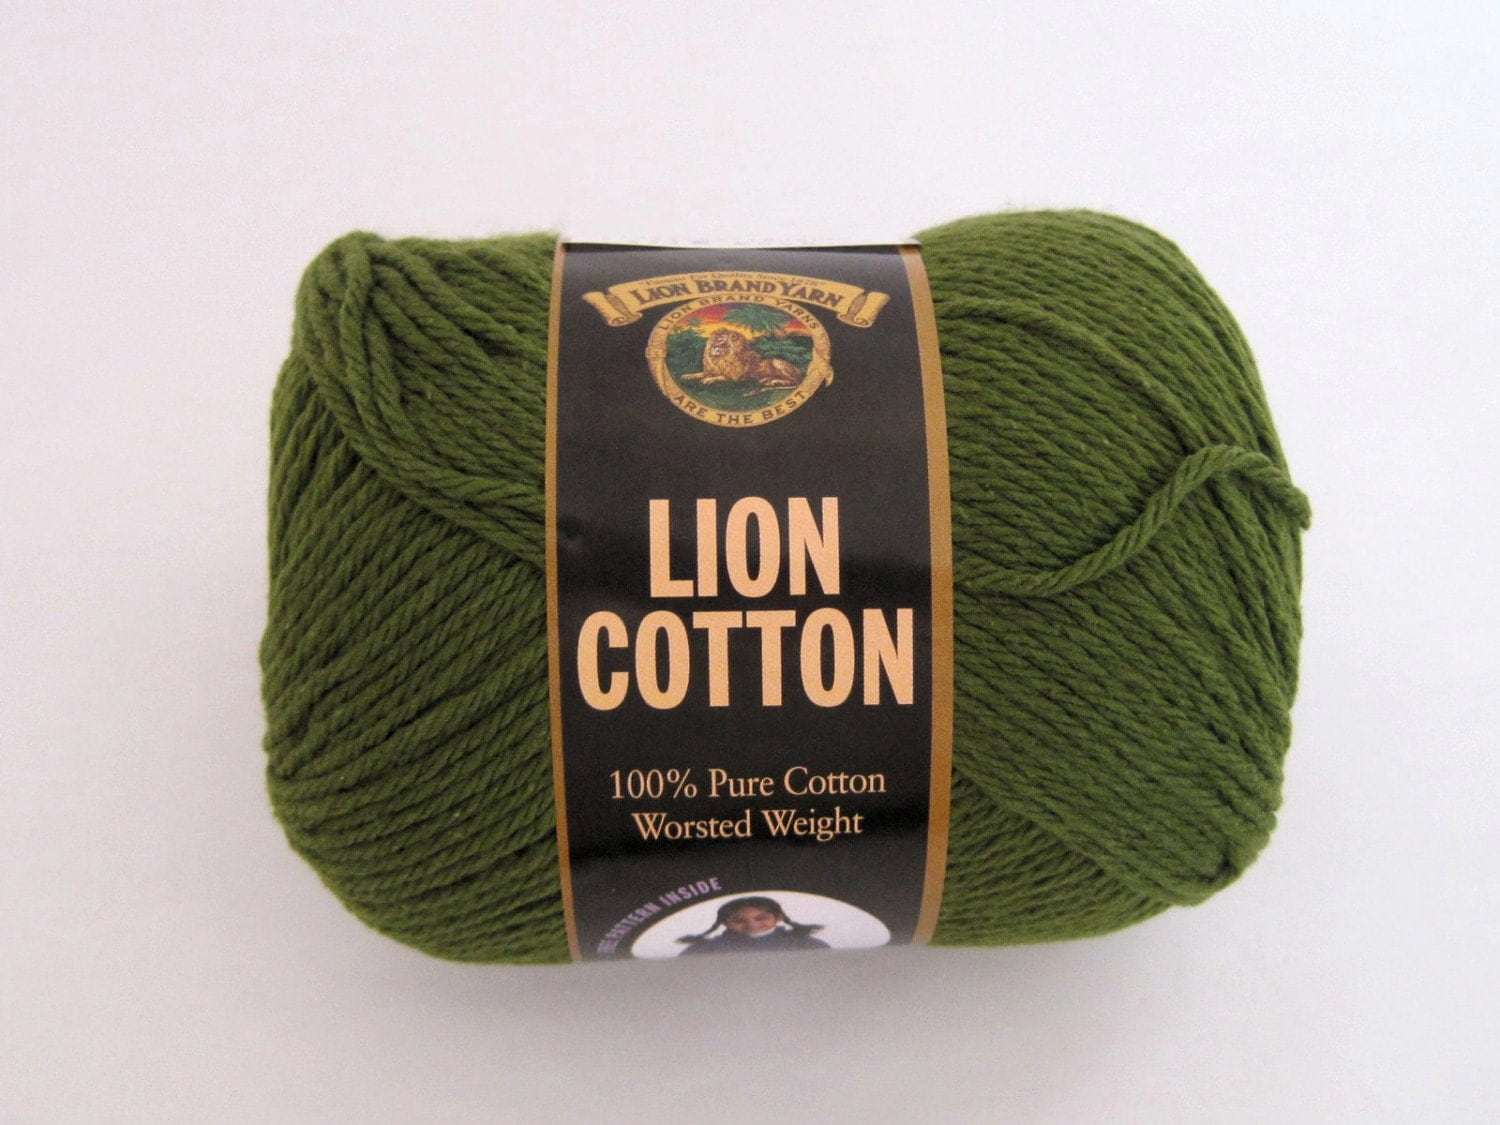 kitchen cotton yarn corner booth seating green lion brand craft supplies by talicakecrochet